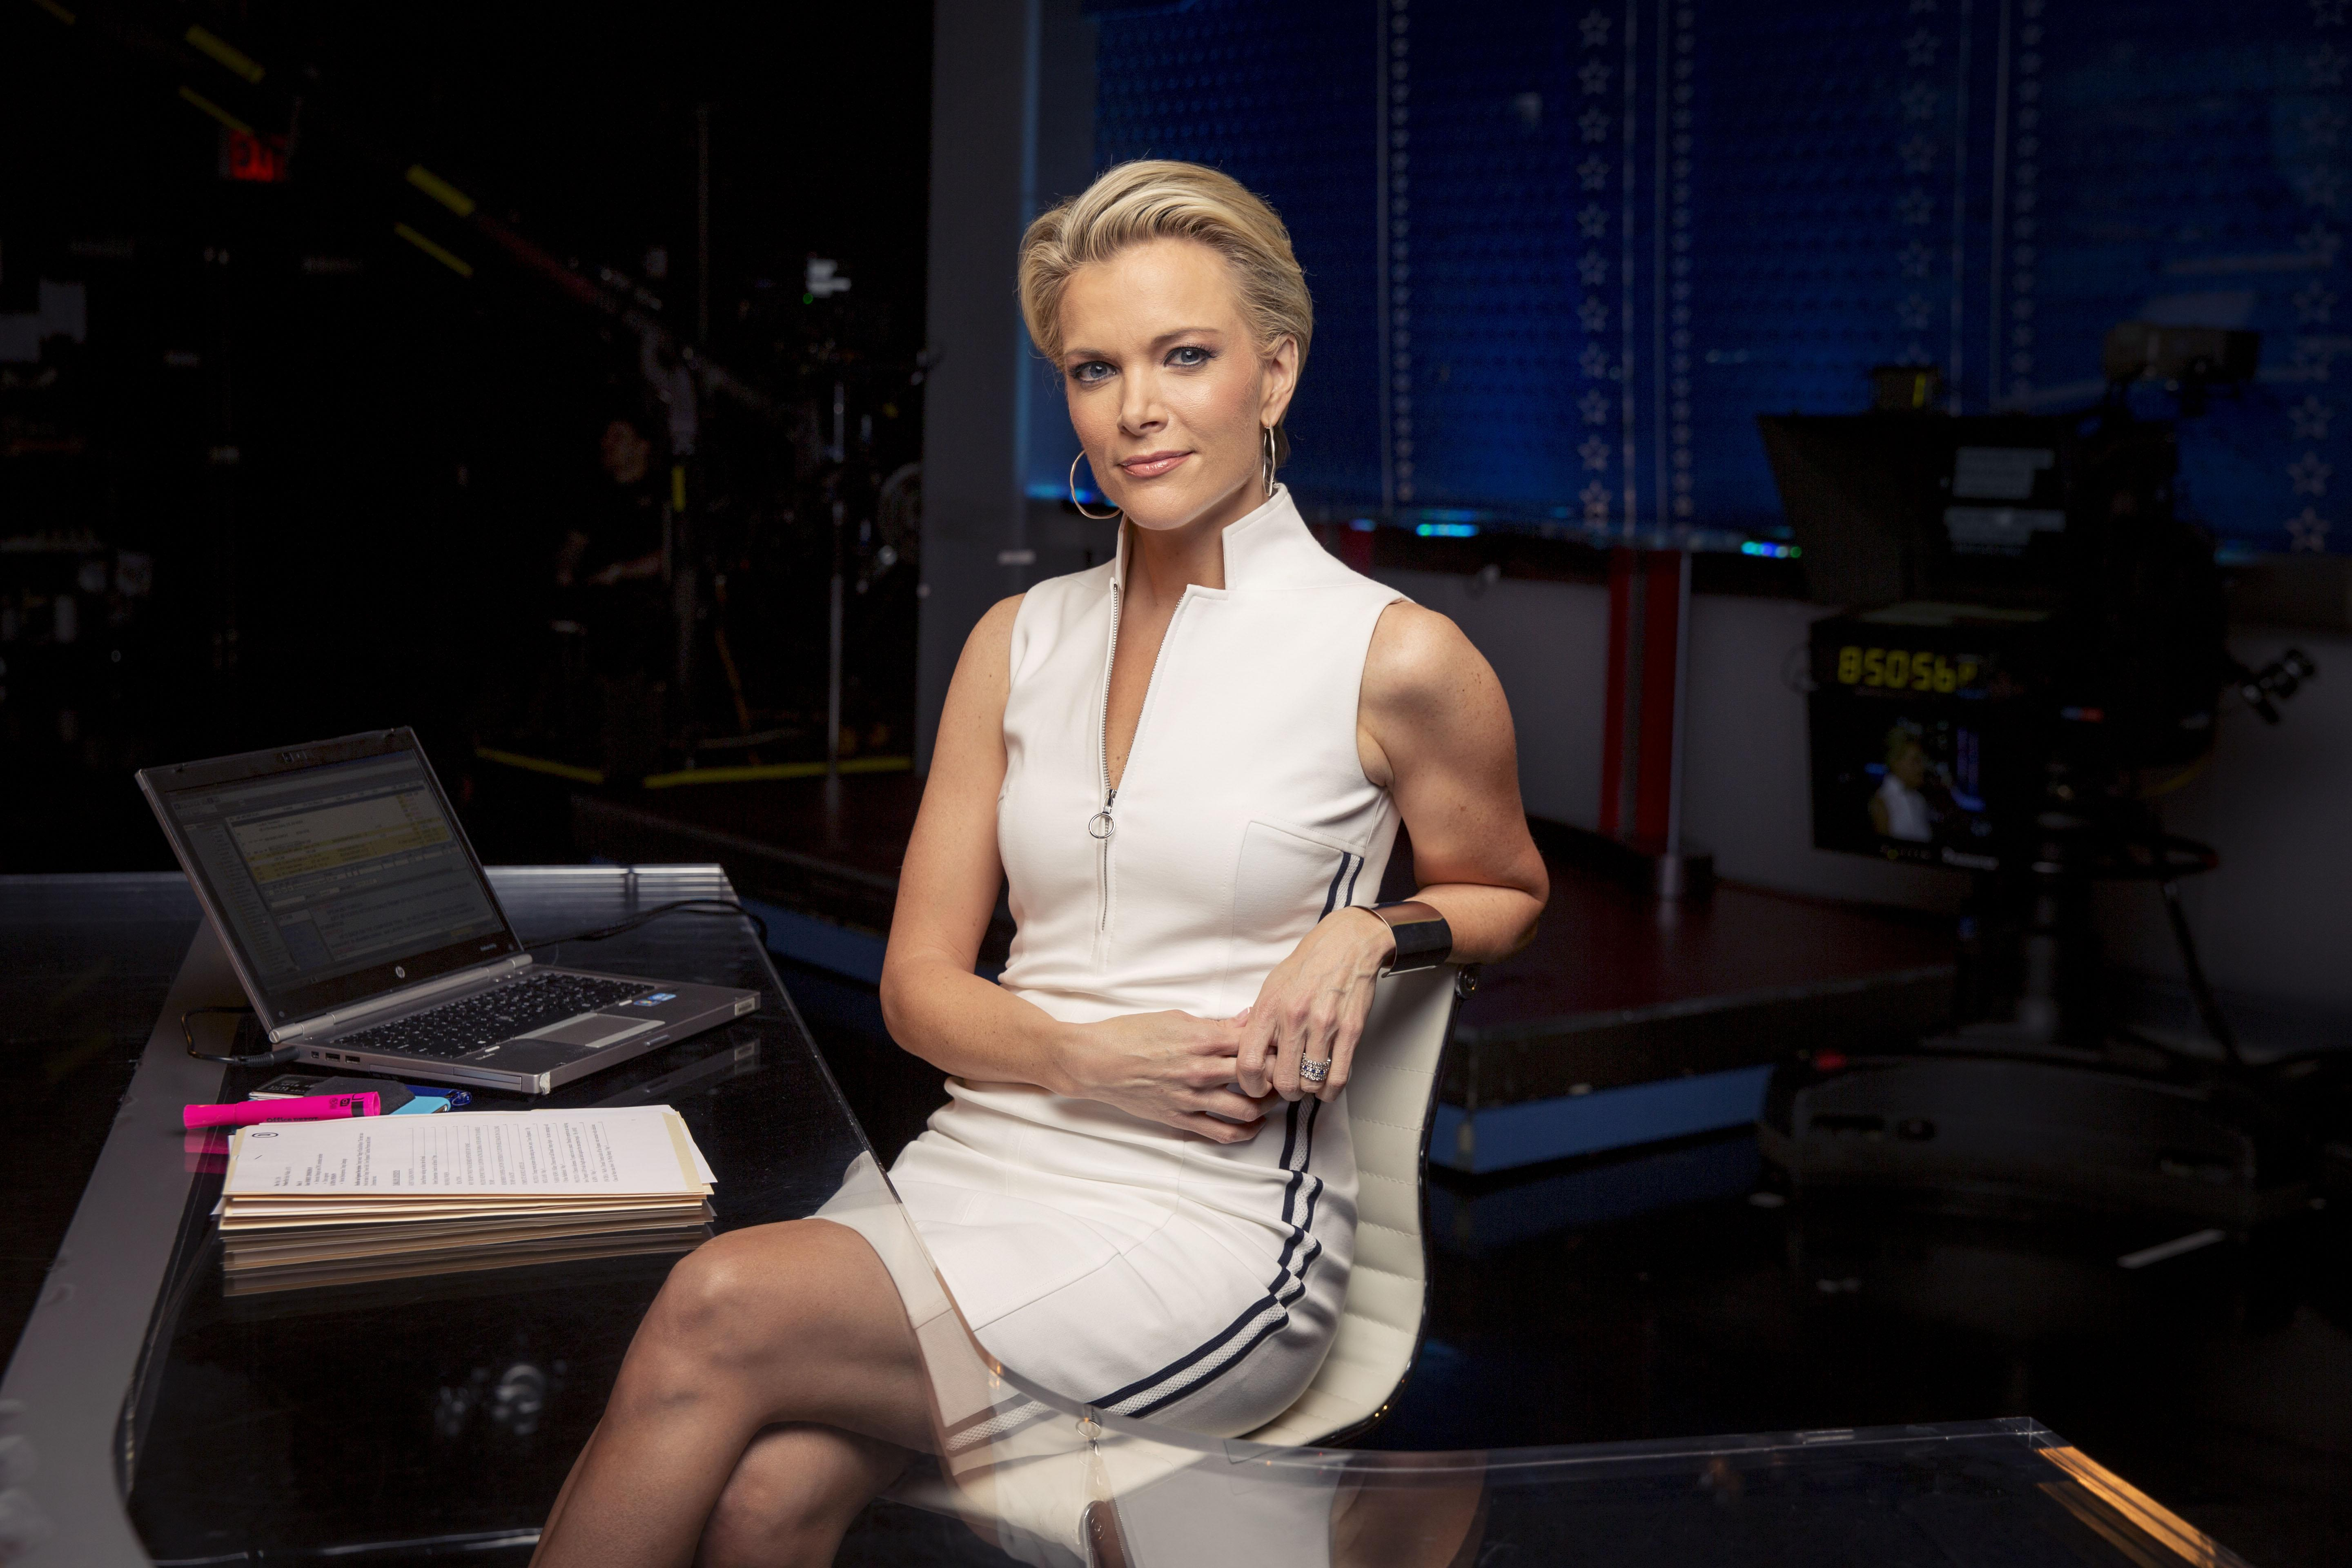 megyn kelly alleges roger ailes sexually harassed her 2